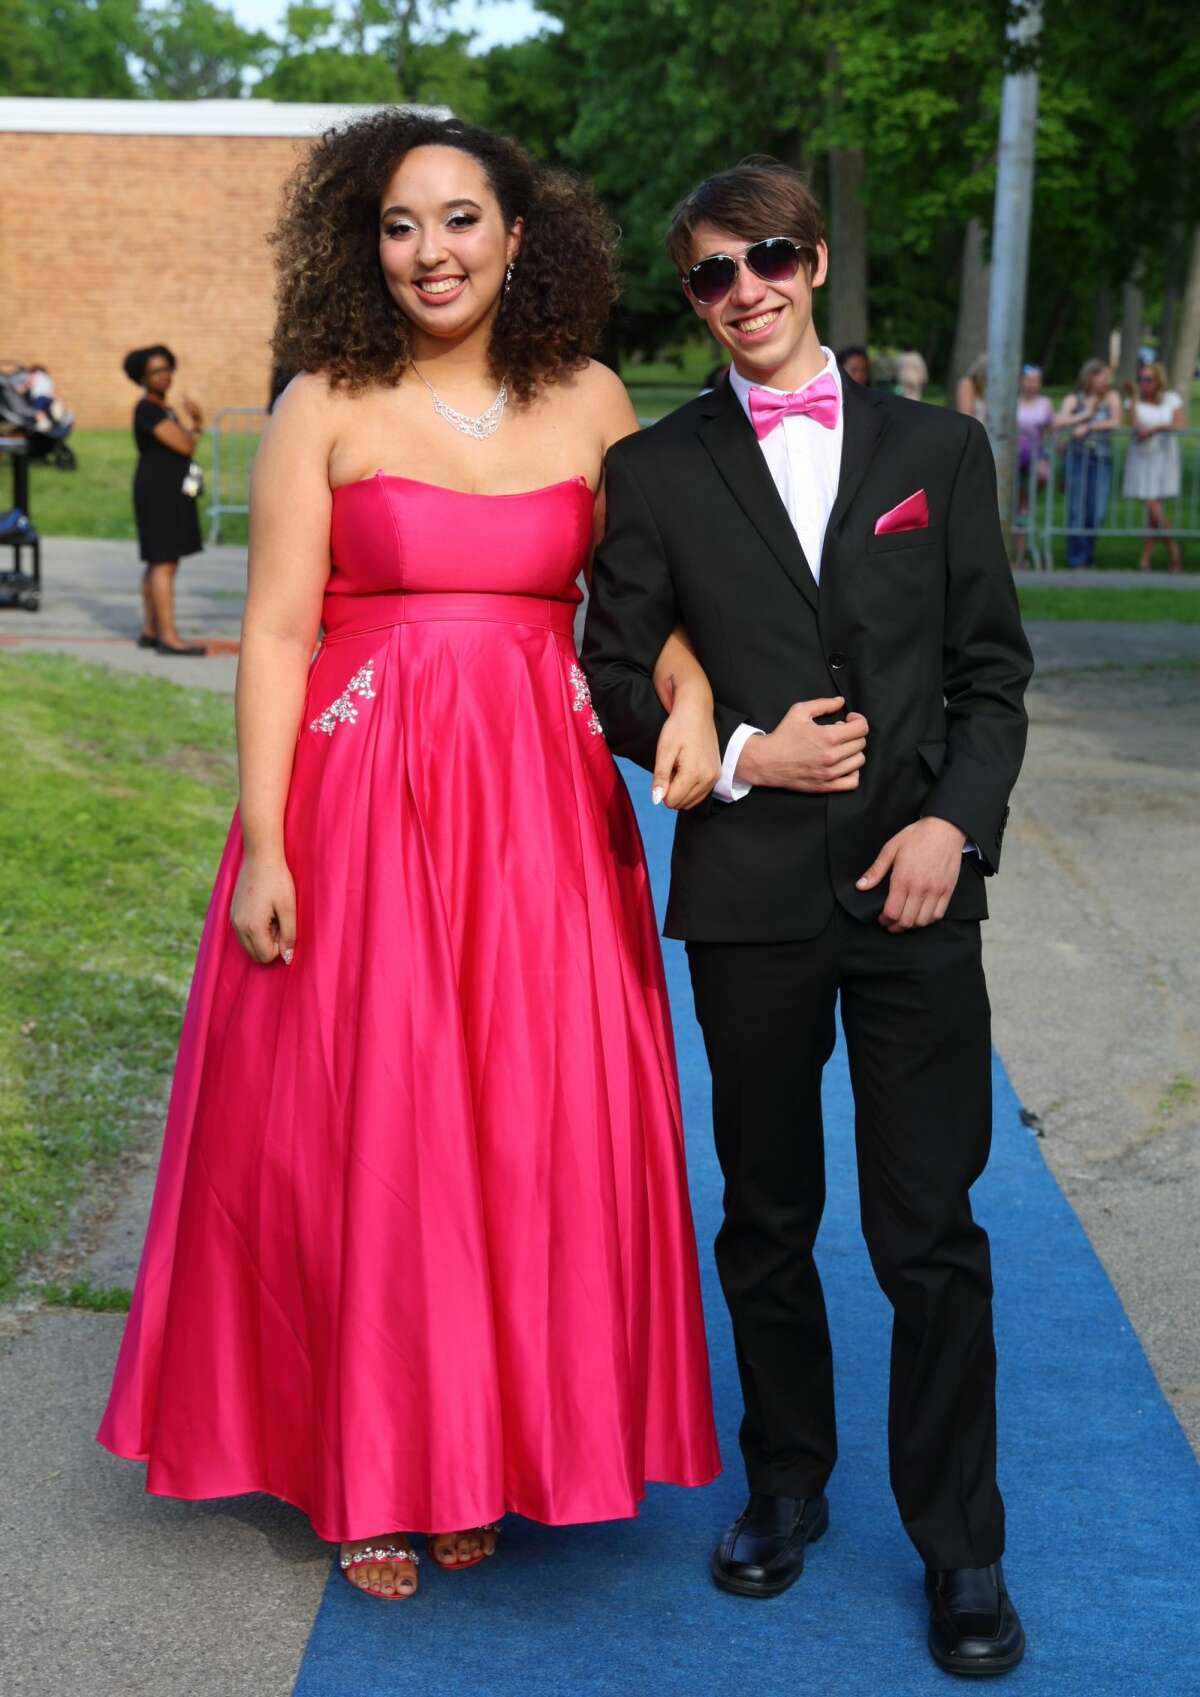 Were you Seen at the Schenectady High School Junior/Senior prom walk-in at the high school on Friday, June 8, 2018?